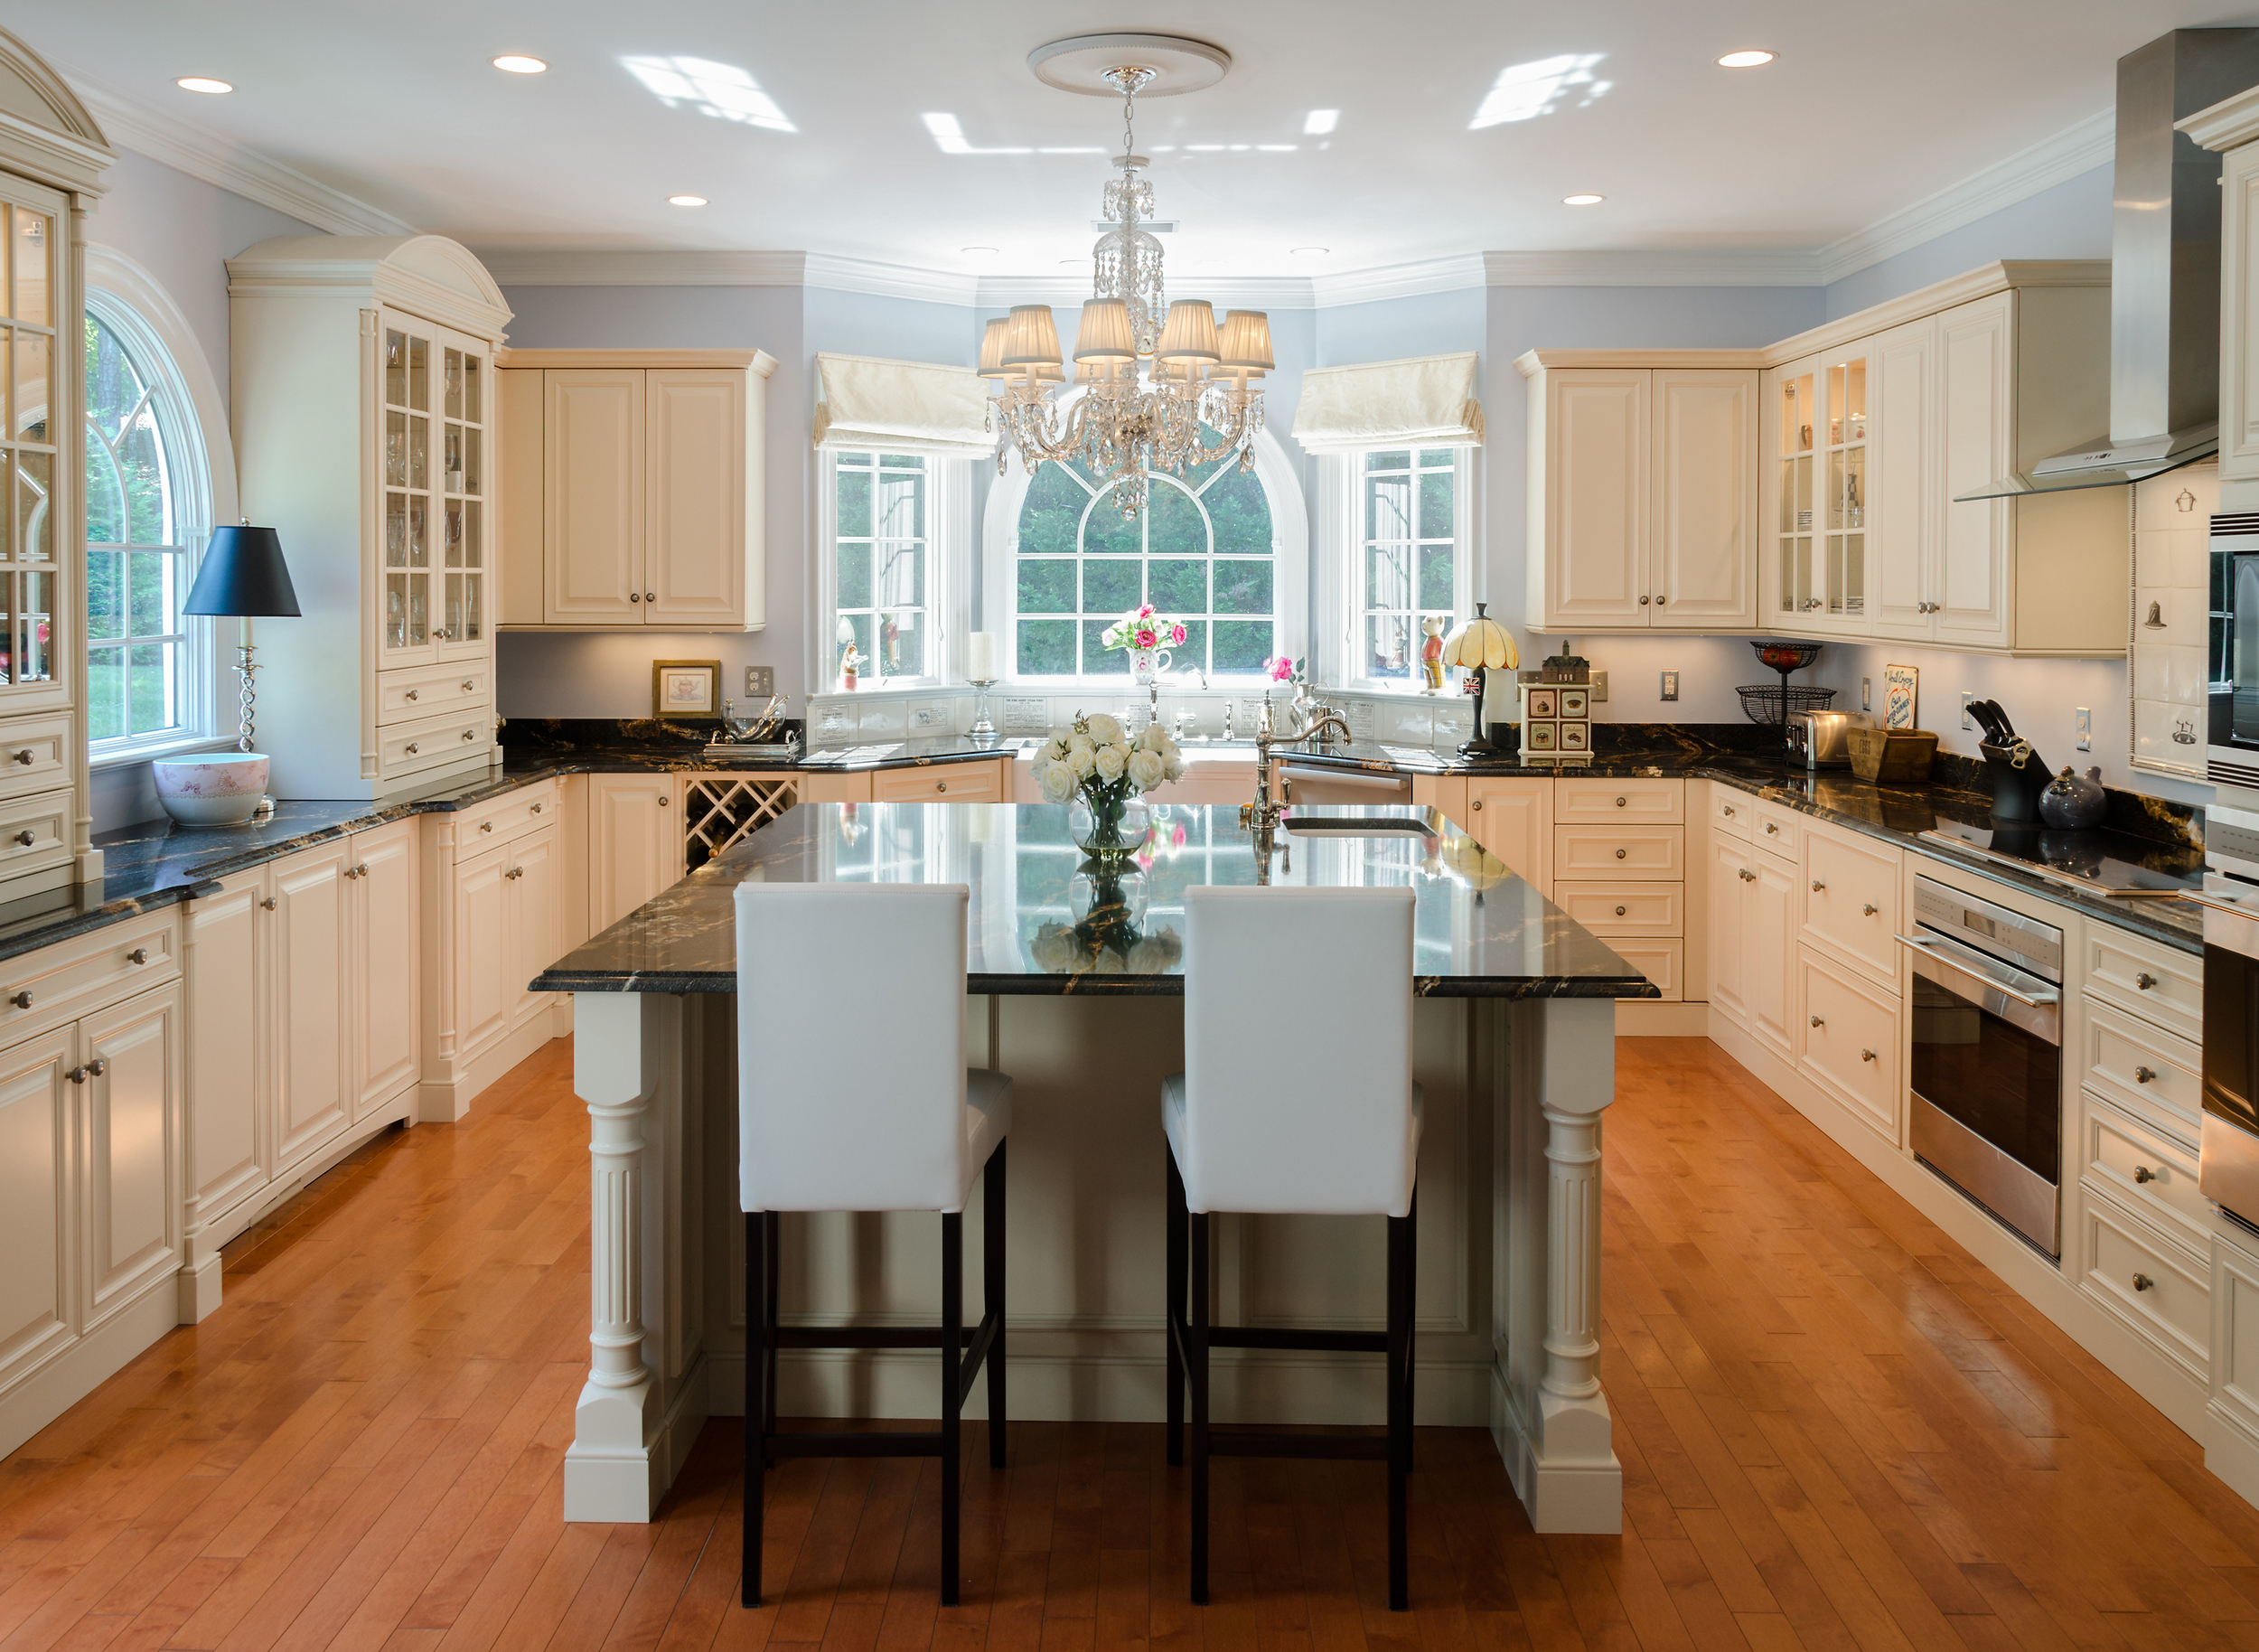 Custom-Kitchens-Chidwick-07182013-Kitchen-Overall-2.jpg